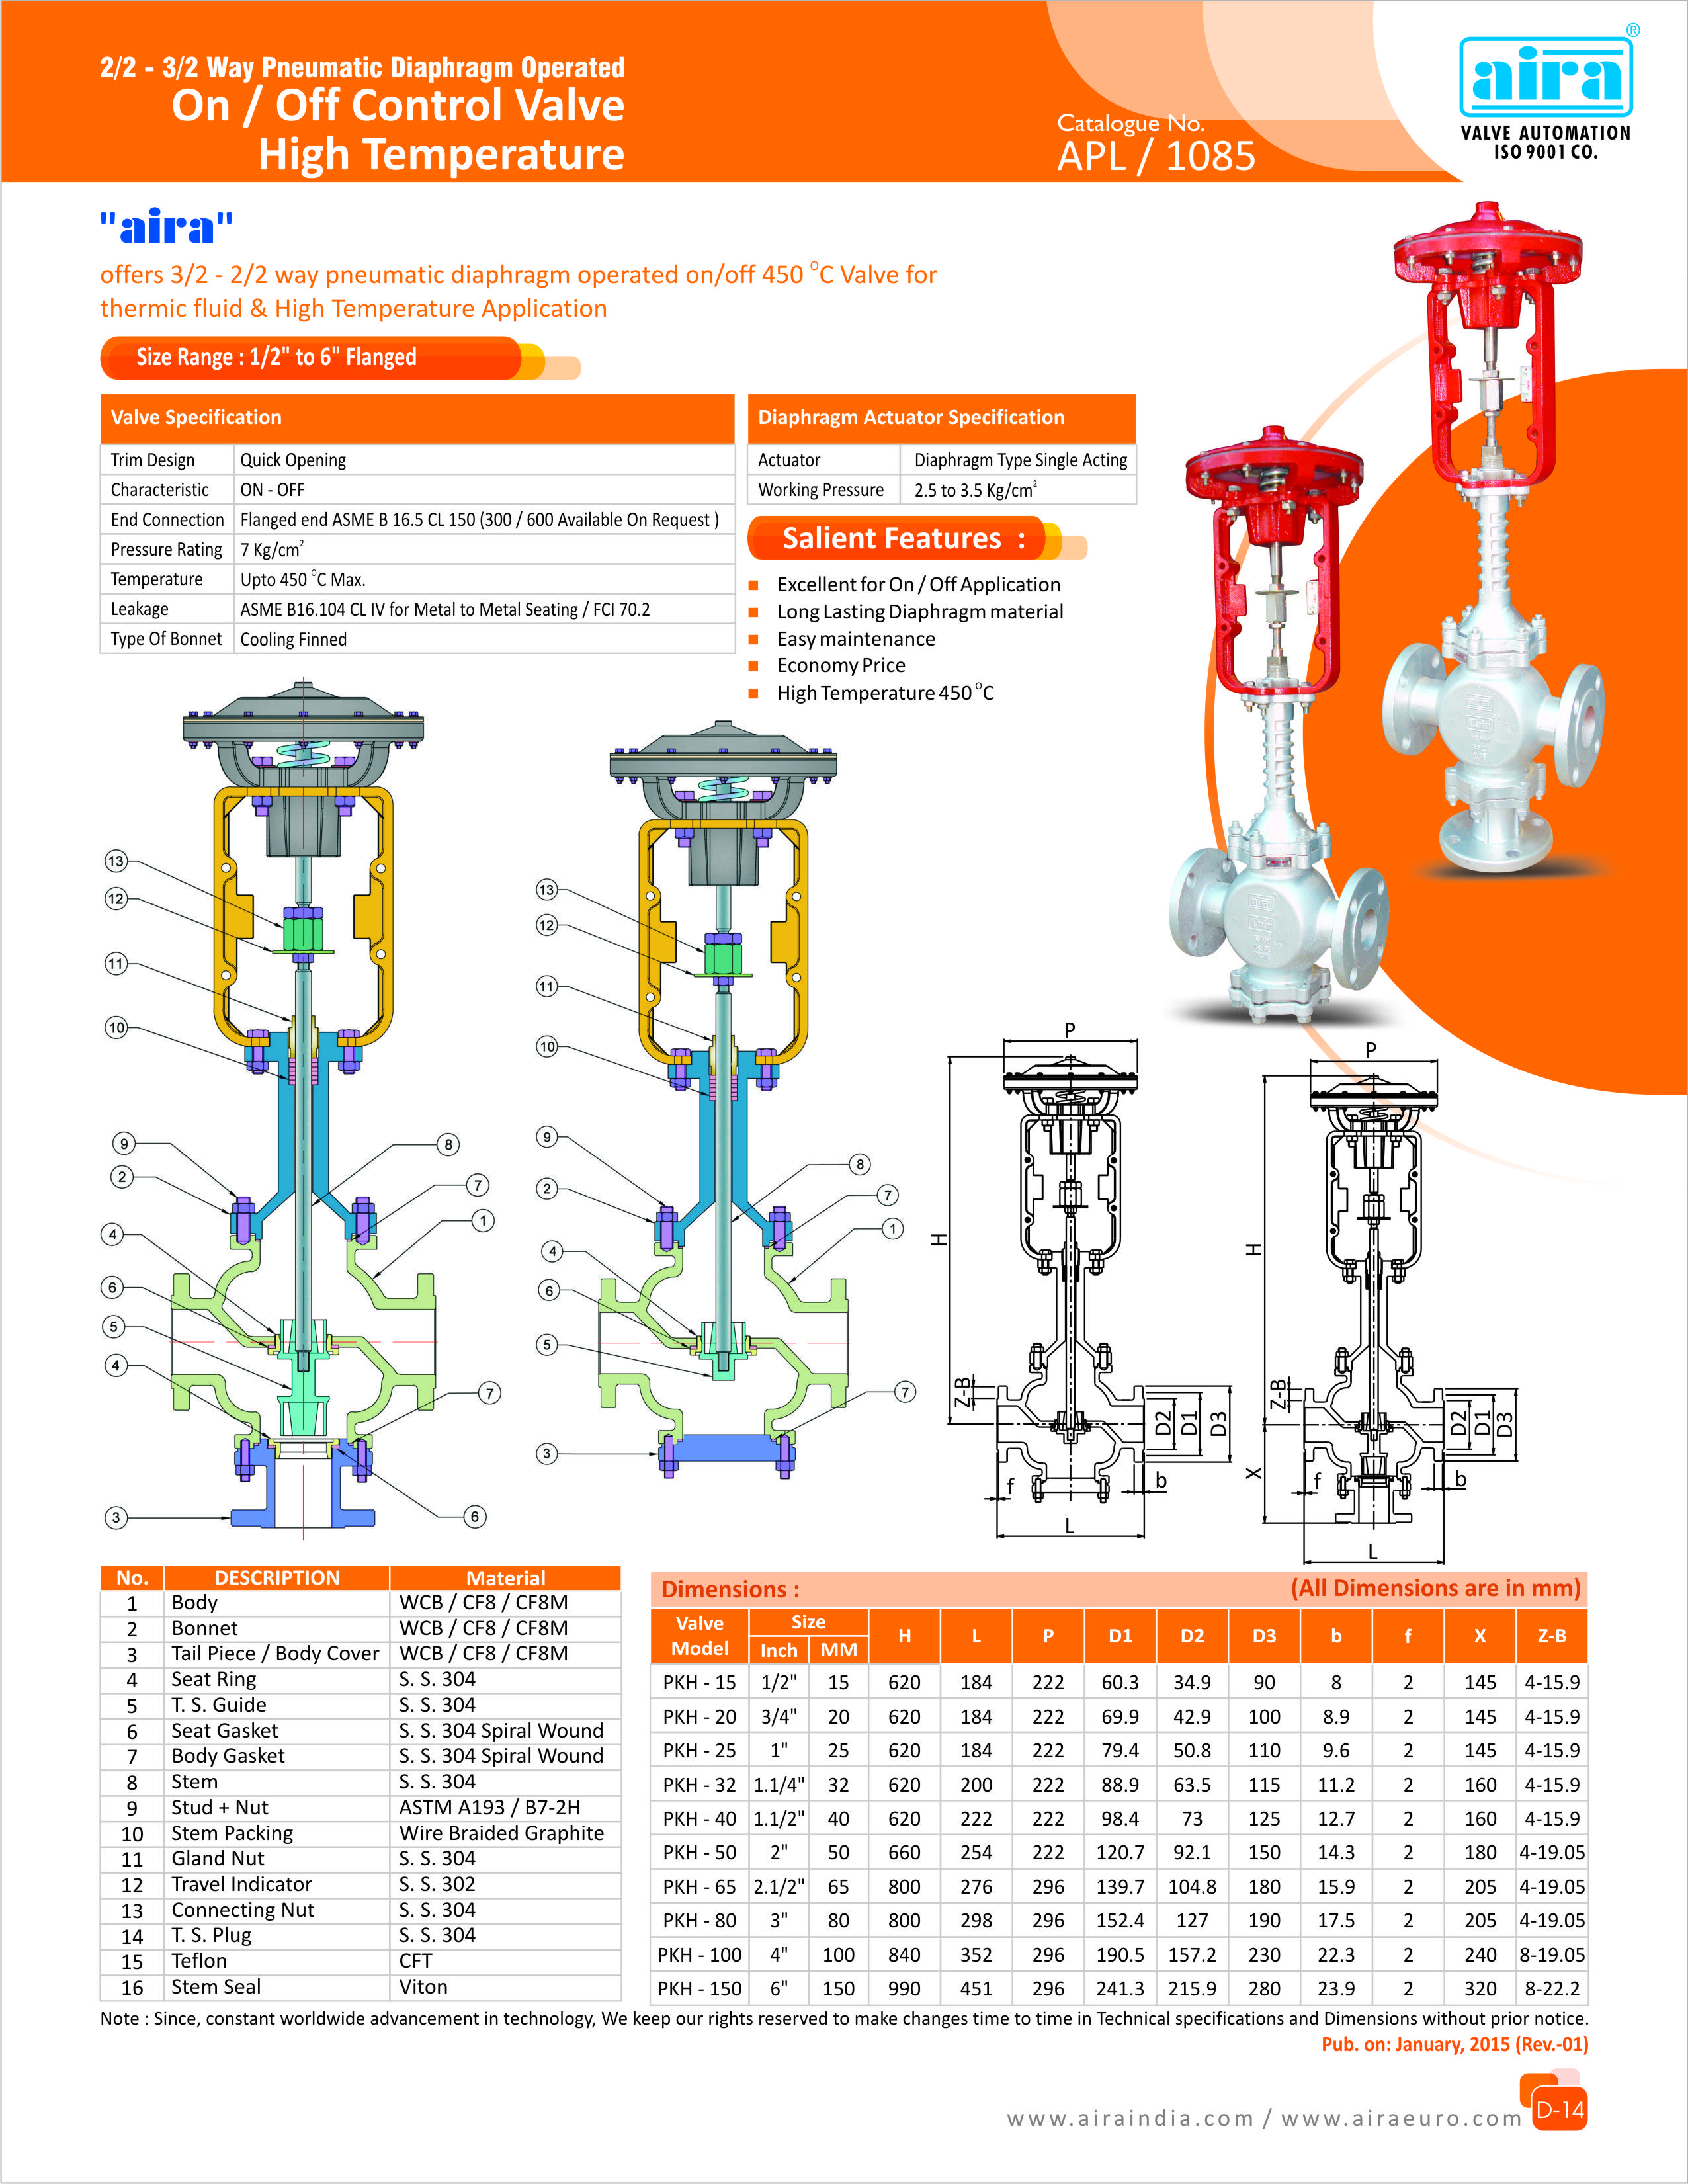 22 32 way pneumatic diaphragm operated onoff control valve high 22 32 way pneumatic diaphragm operated onoff control valve high temperature ccuart Gallery